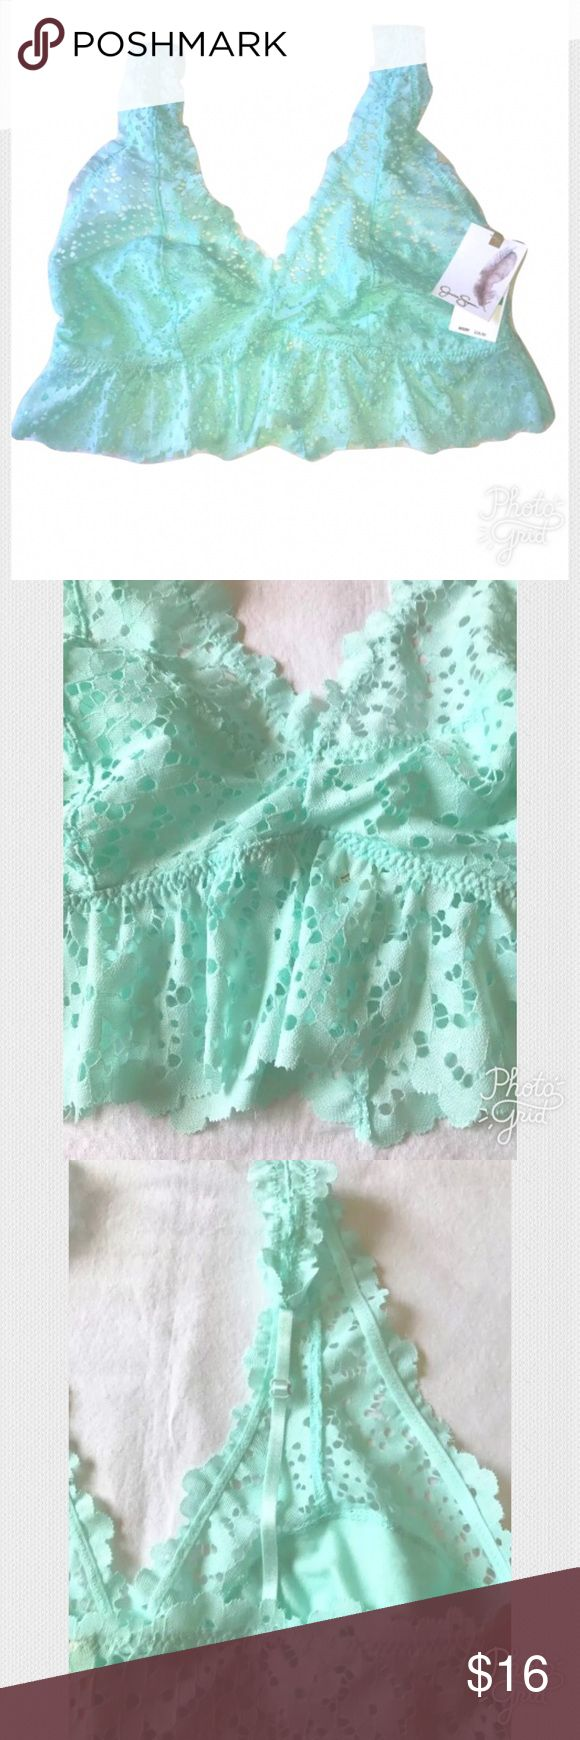 NEW Eyelet Ruffle Triangle Bralette NEW Jessica Simpson Eyelet Ruffle Triangle Bralette Soft Mint Green SIZE Large MSRP on tag is $28  I try my very best to capture the correct shade.  The actual may vary a bit in person.  Open eyelet fabric, the actual cup area is lined  Pull on style  Unpadded  Adjustable skinny shoulder straps  Size Large  88% Nylon. 12% Spandex  Thank you so much! Jessica Simpson Intimates & Sleepwear Bras